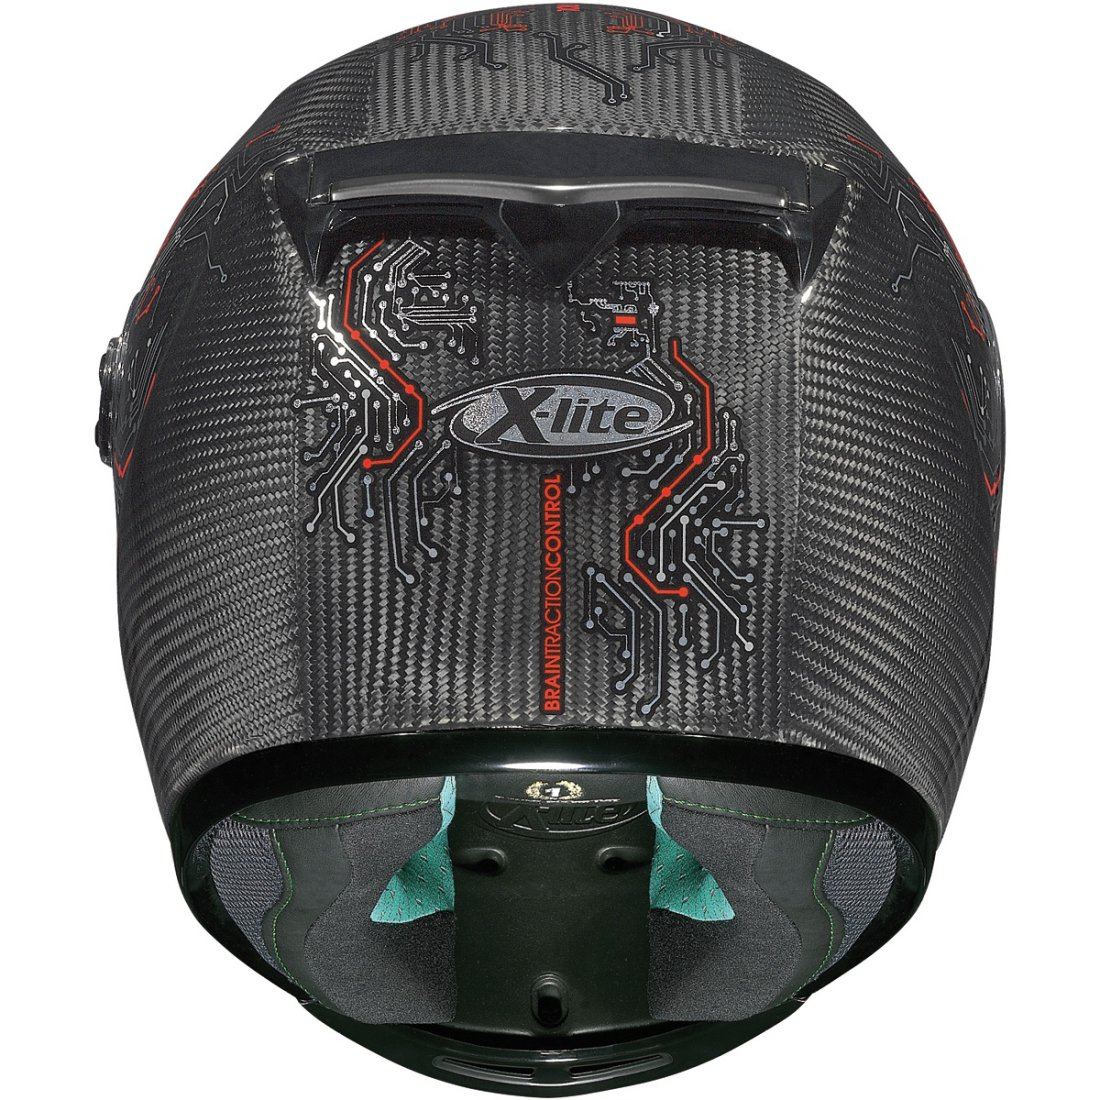 x lite x 802rr ultra carbon btc carbon helmet motocard. Black Bedroom Furniture Sets. Home Design Ideas